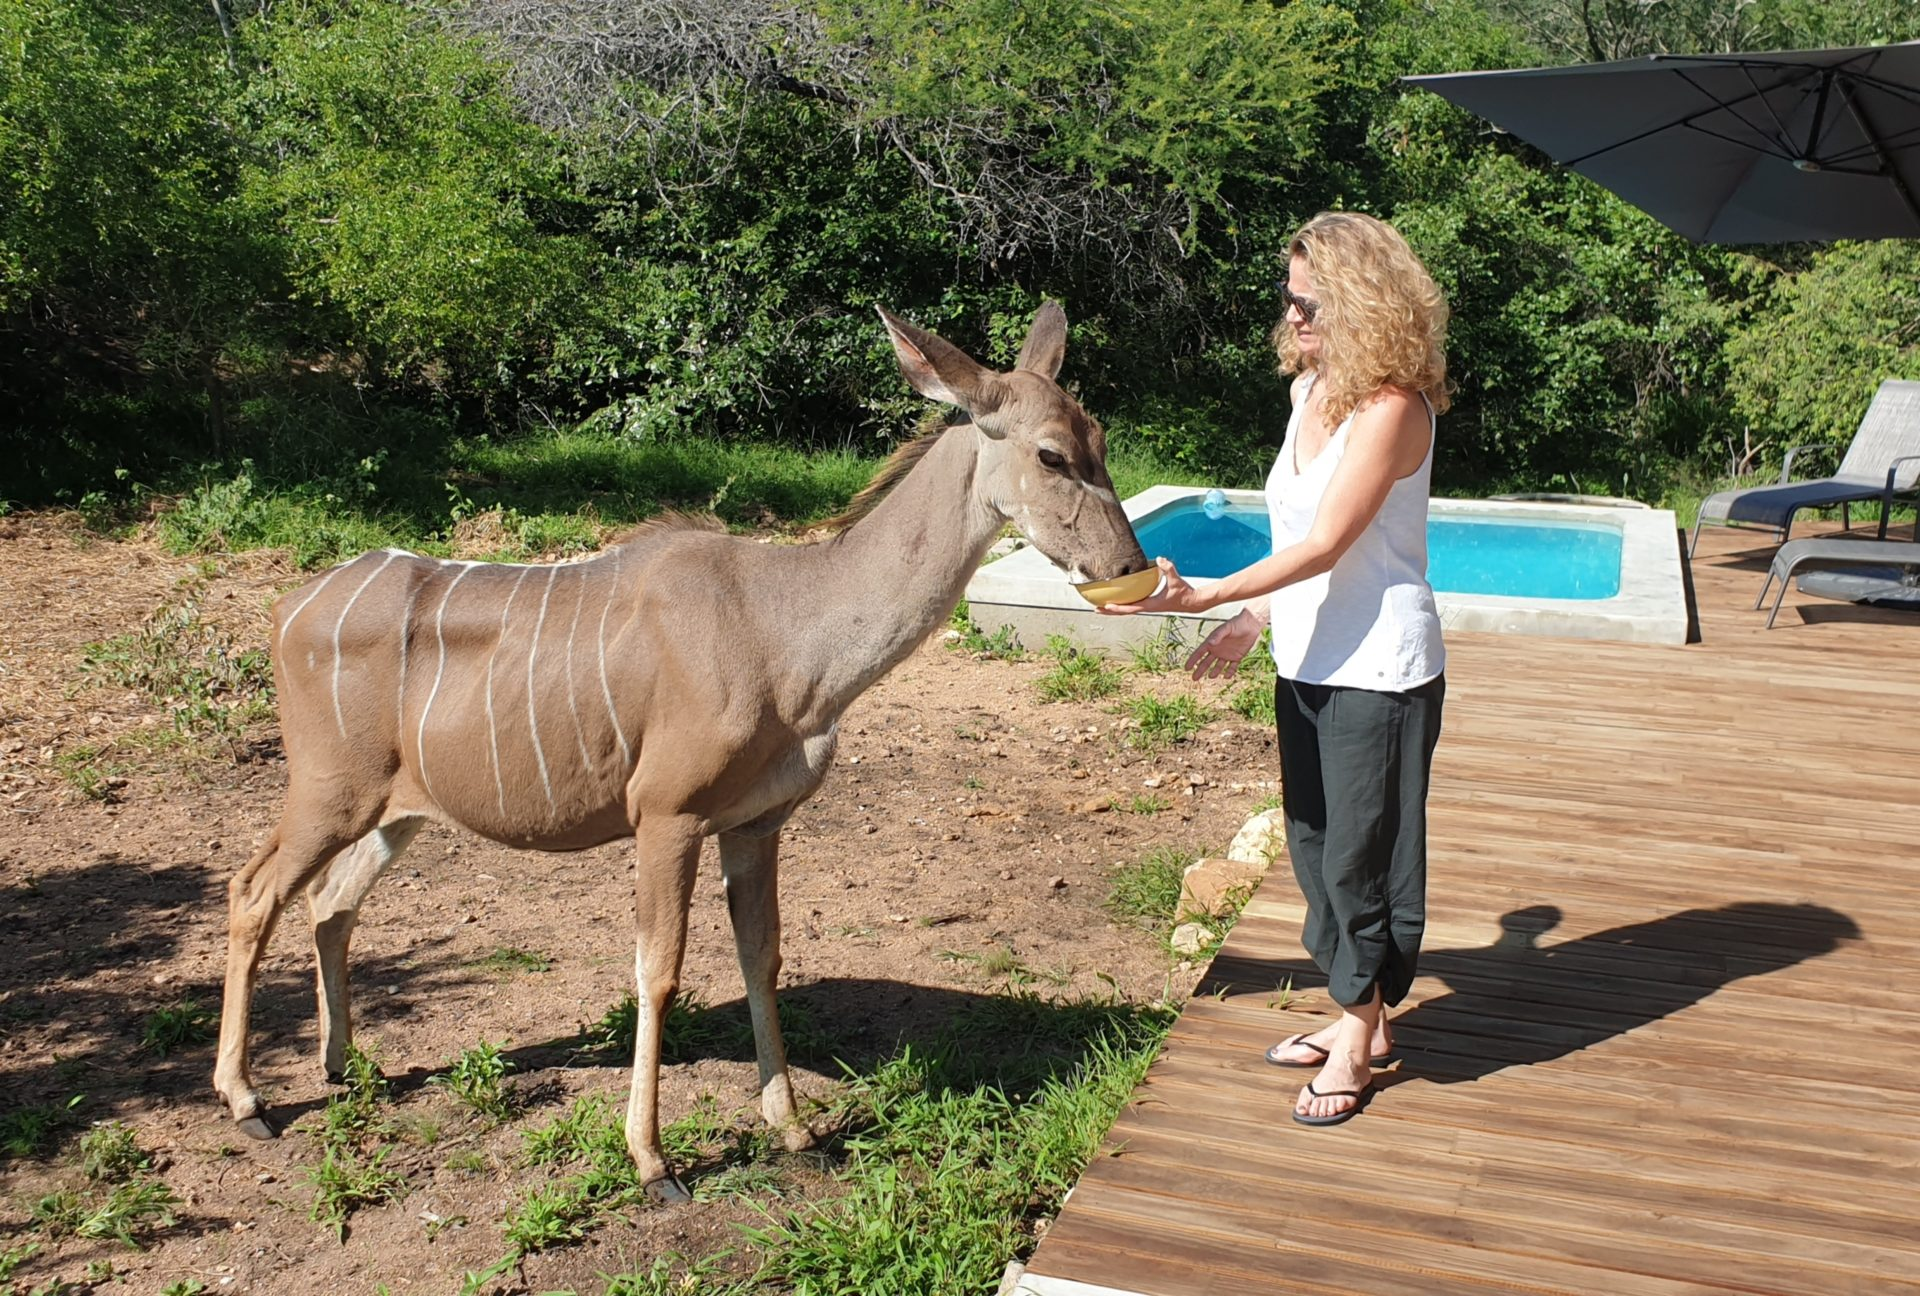 Leadwood Self Catering Guesthouse in Marloth Park, Mpumalanga, South Africa. Wildlife interactions in Marloth Park